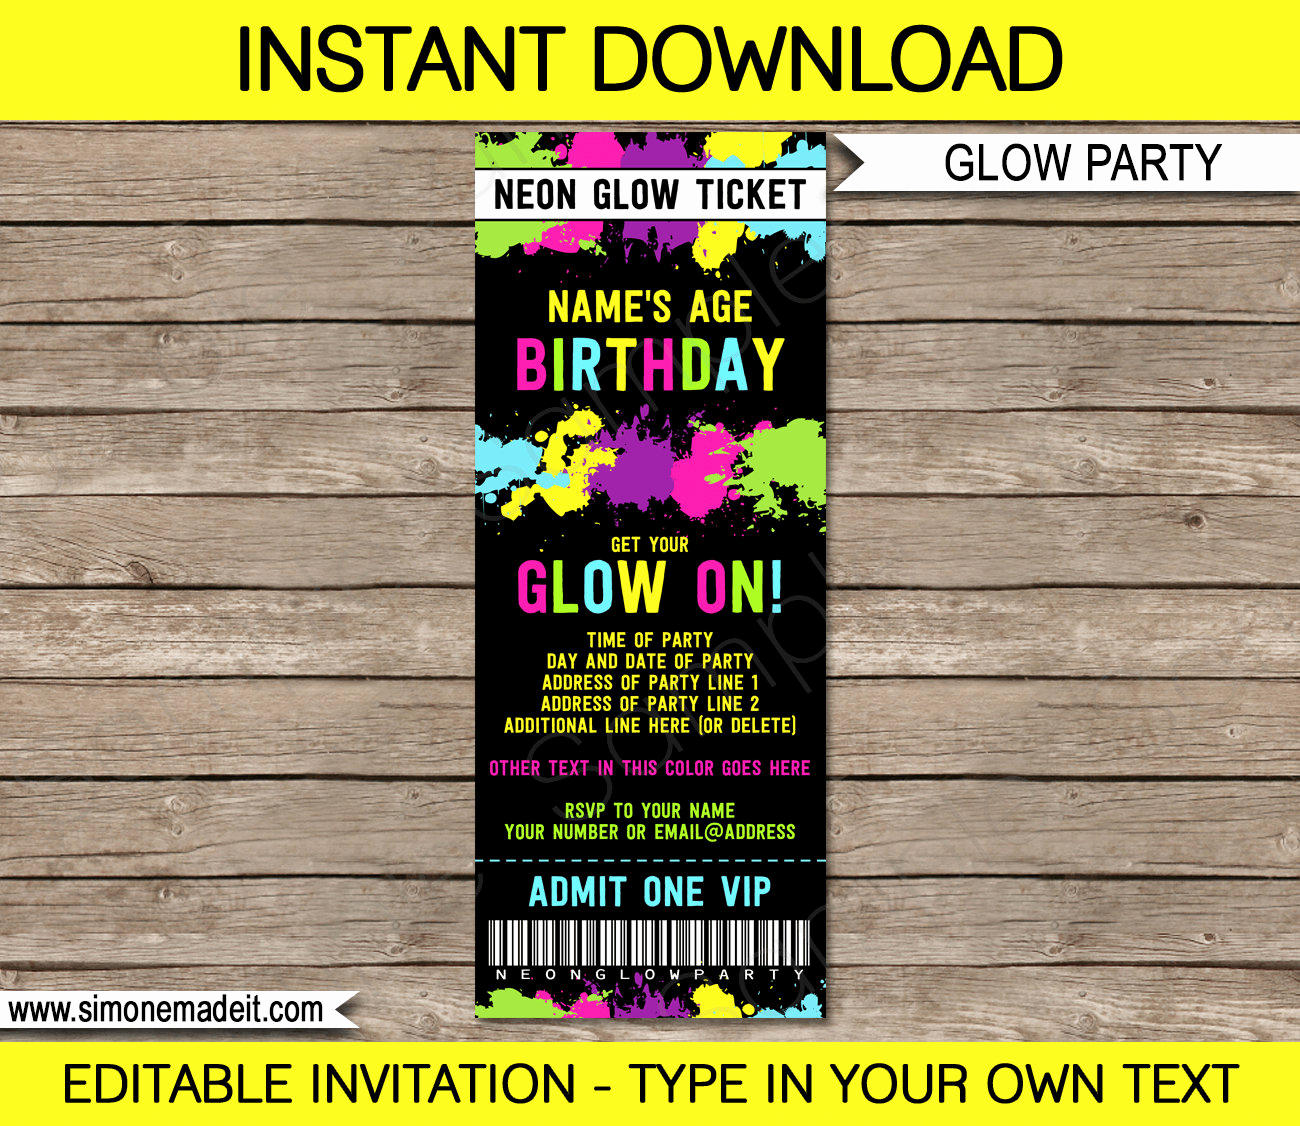 Glow Party Invitation Template Free Luxury Neon Glow Party Ticket Invitation Neon Glow theme Birthday